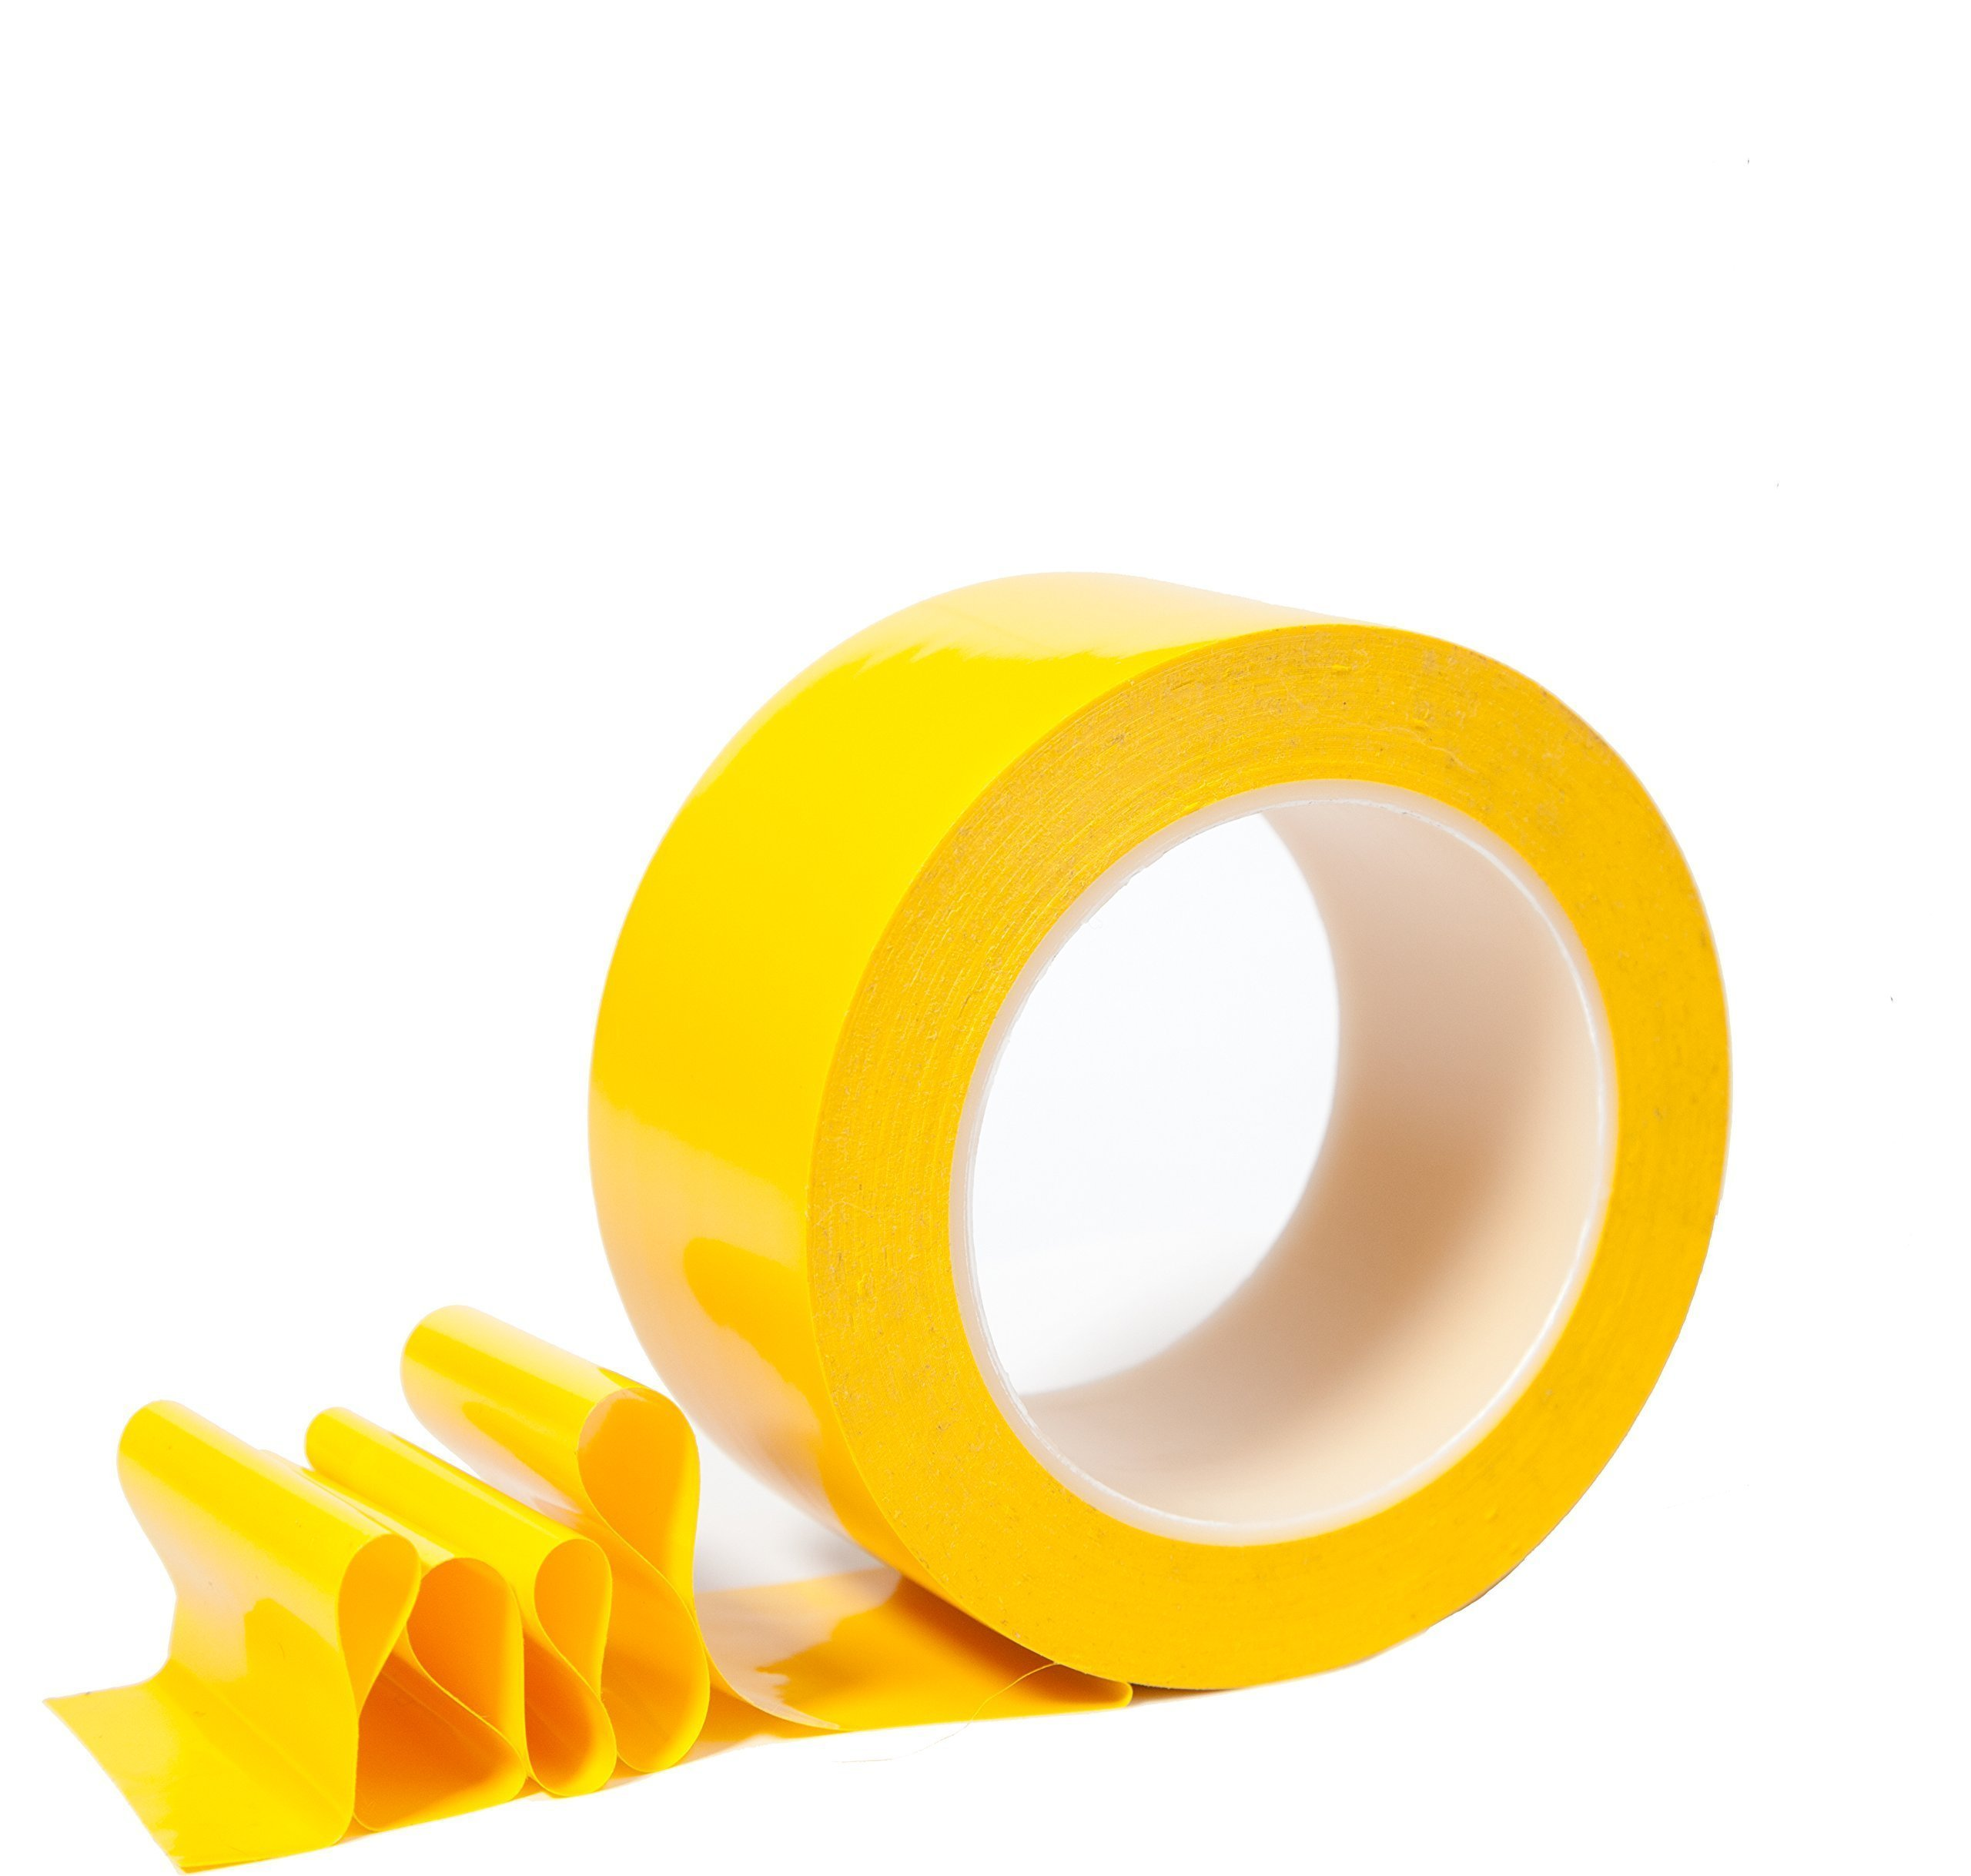 2 inch Floor Tape for Marking Factories, Warehouses, Workshops, Public Areas with Aggressive Adhesive & Flexible Backing, Yellow 2'' Width 36 Yards Length